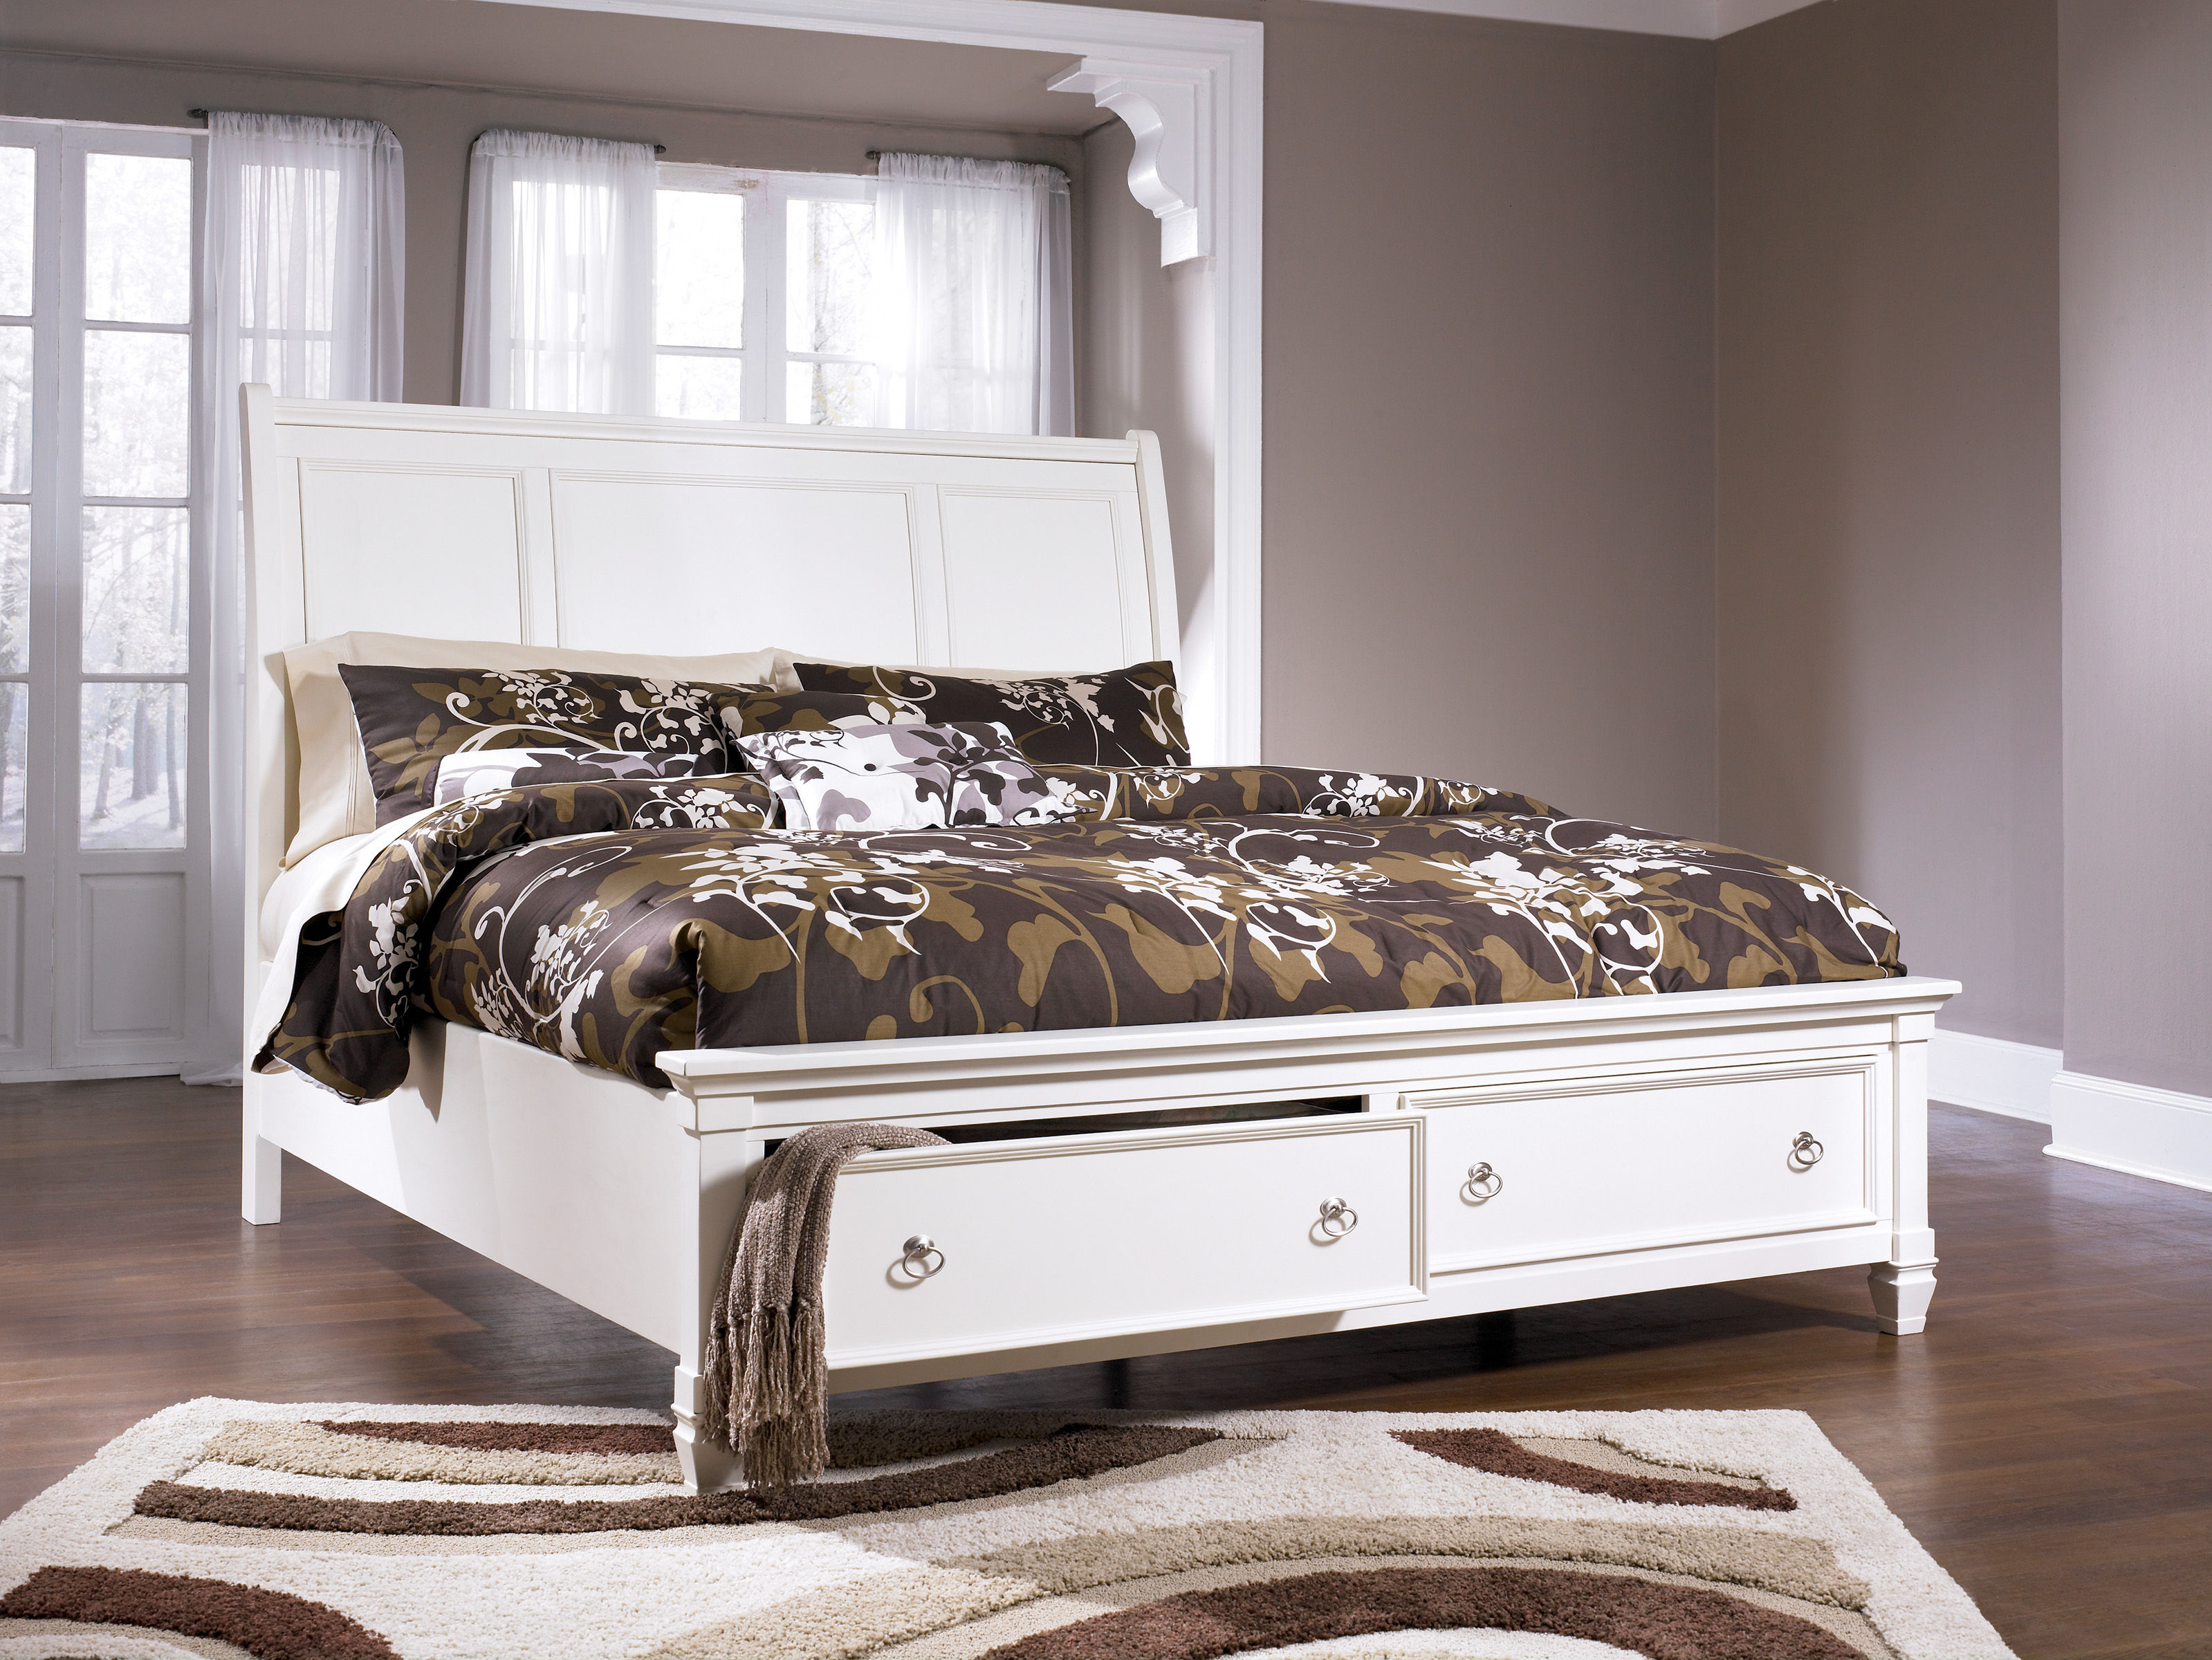 Ashley Furniture Pice King Footboard Storage Bed Click To Enlarge